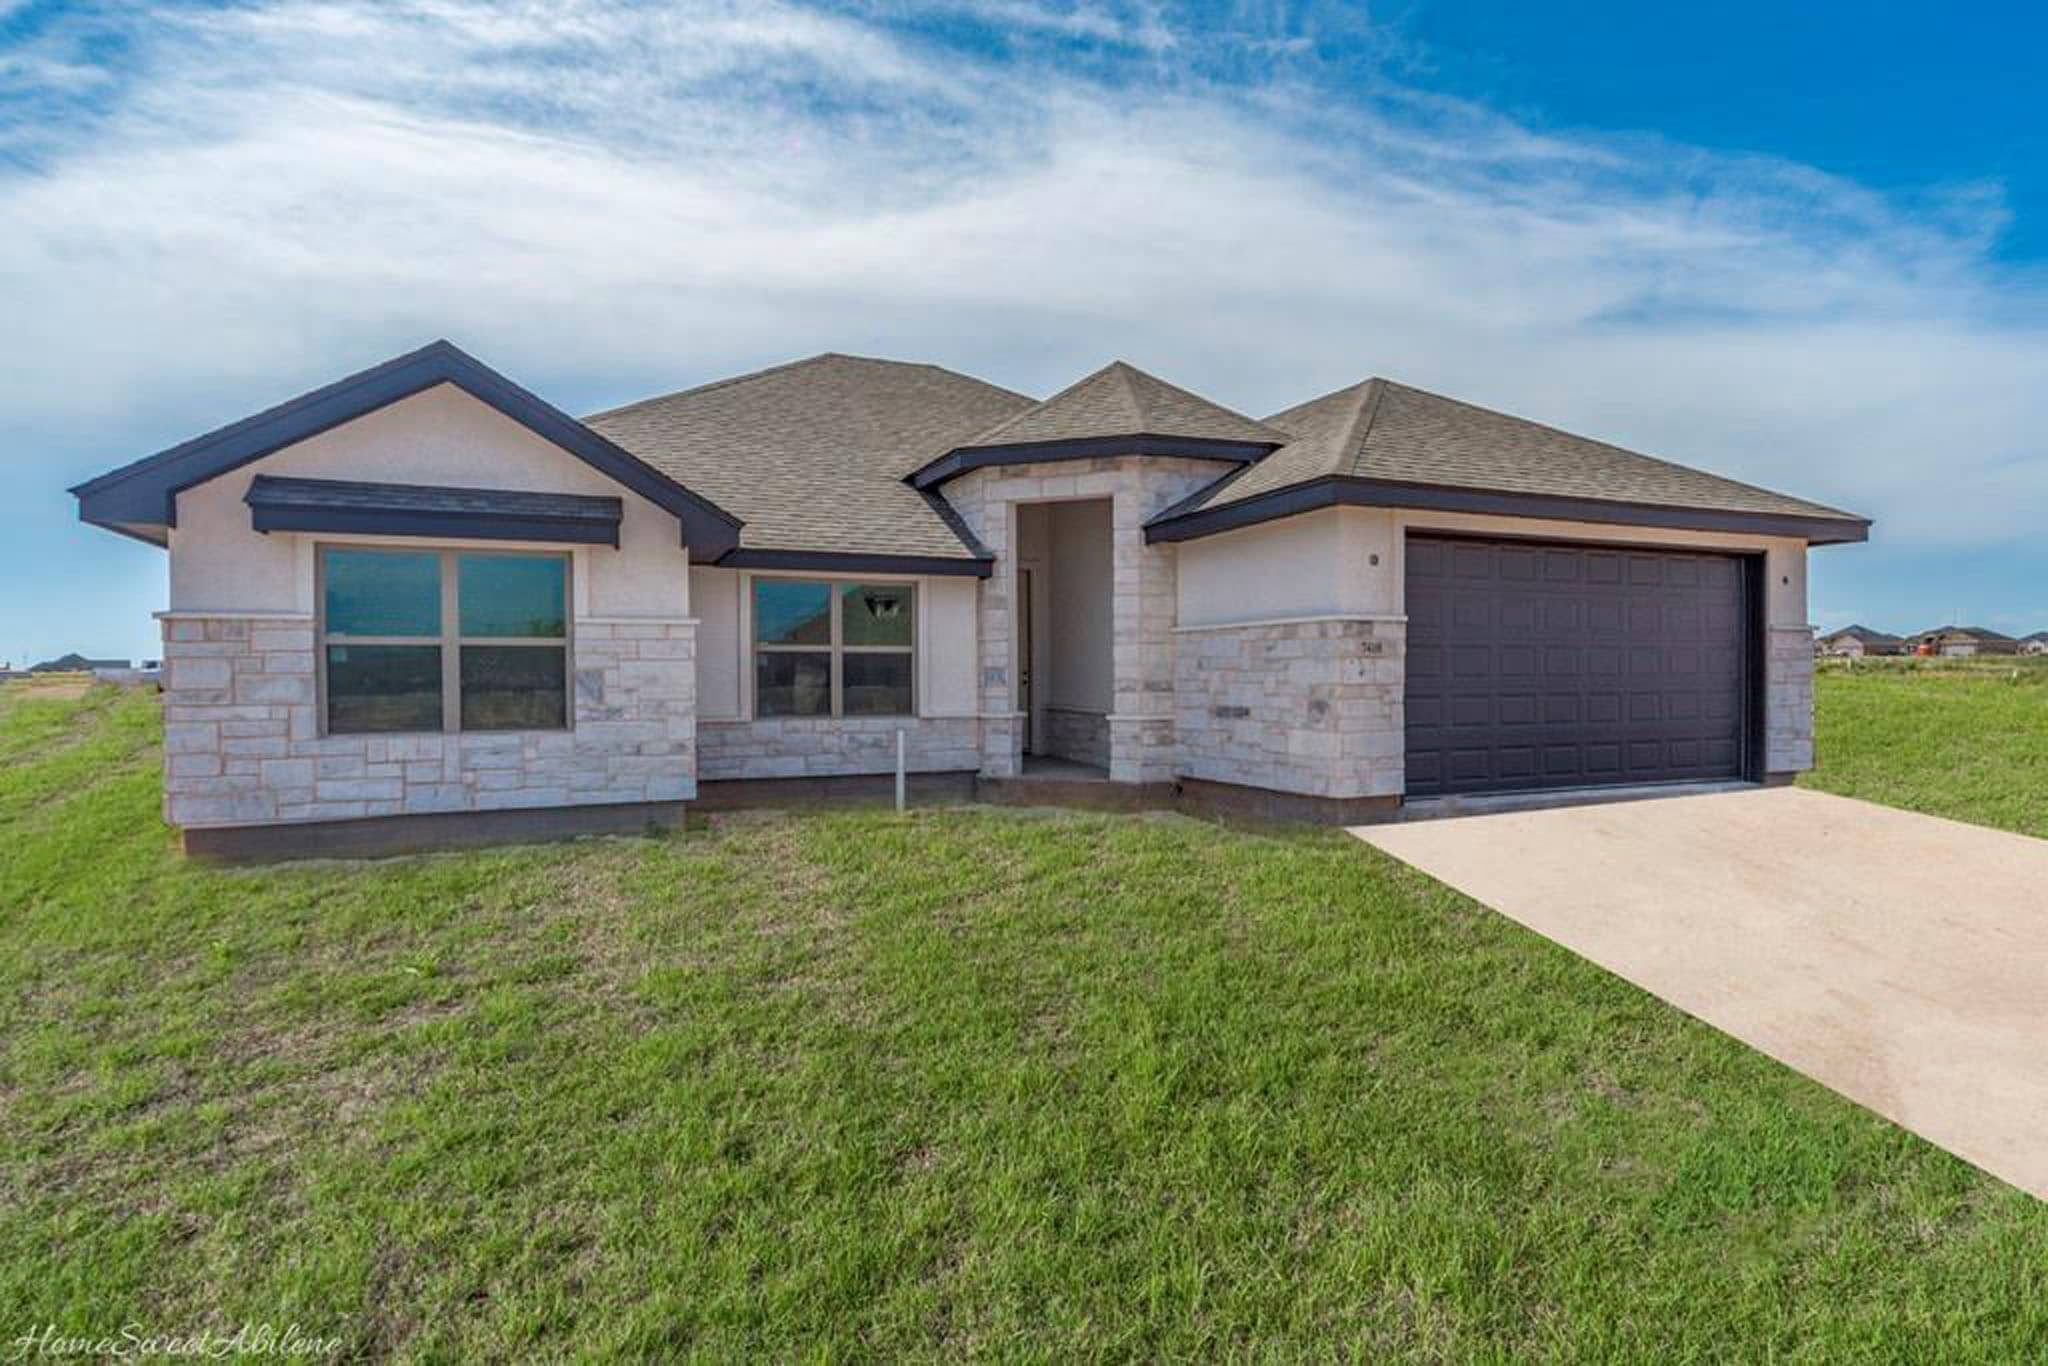 San Angelo Custom Home Builder - 7410 Wildflower Way, Abilene TX 79602